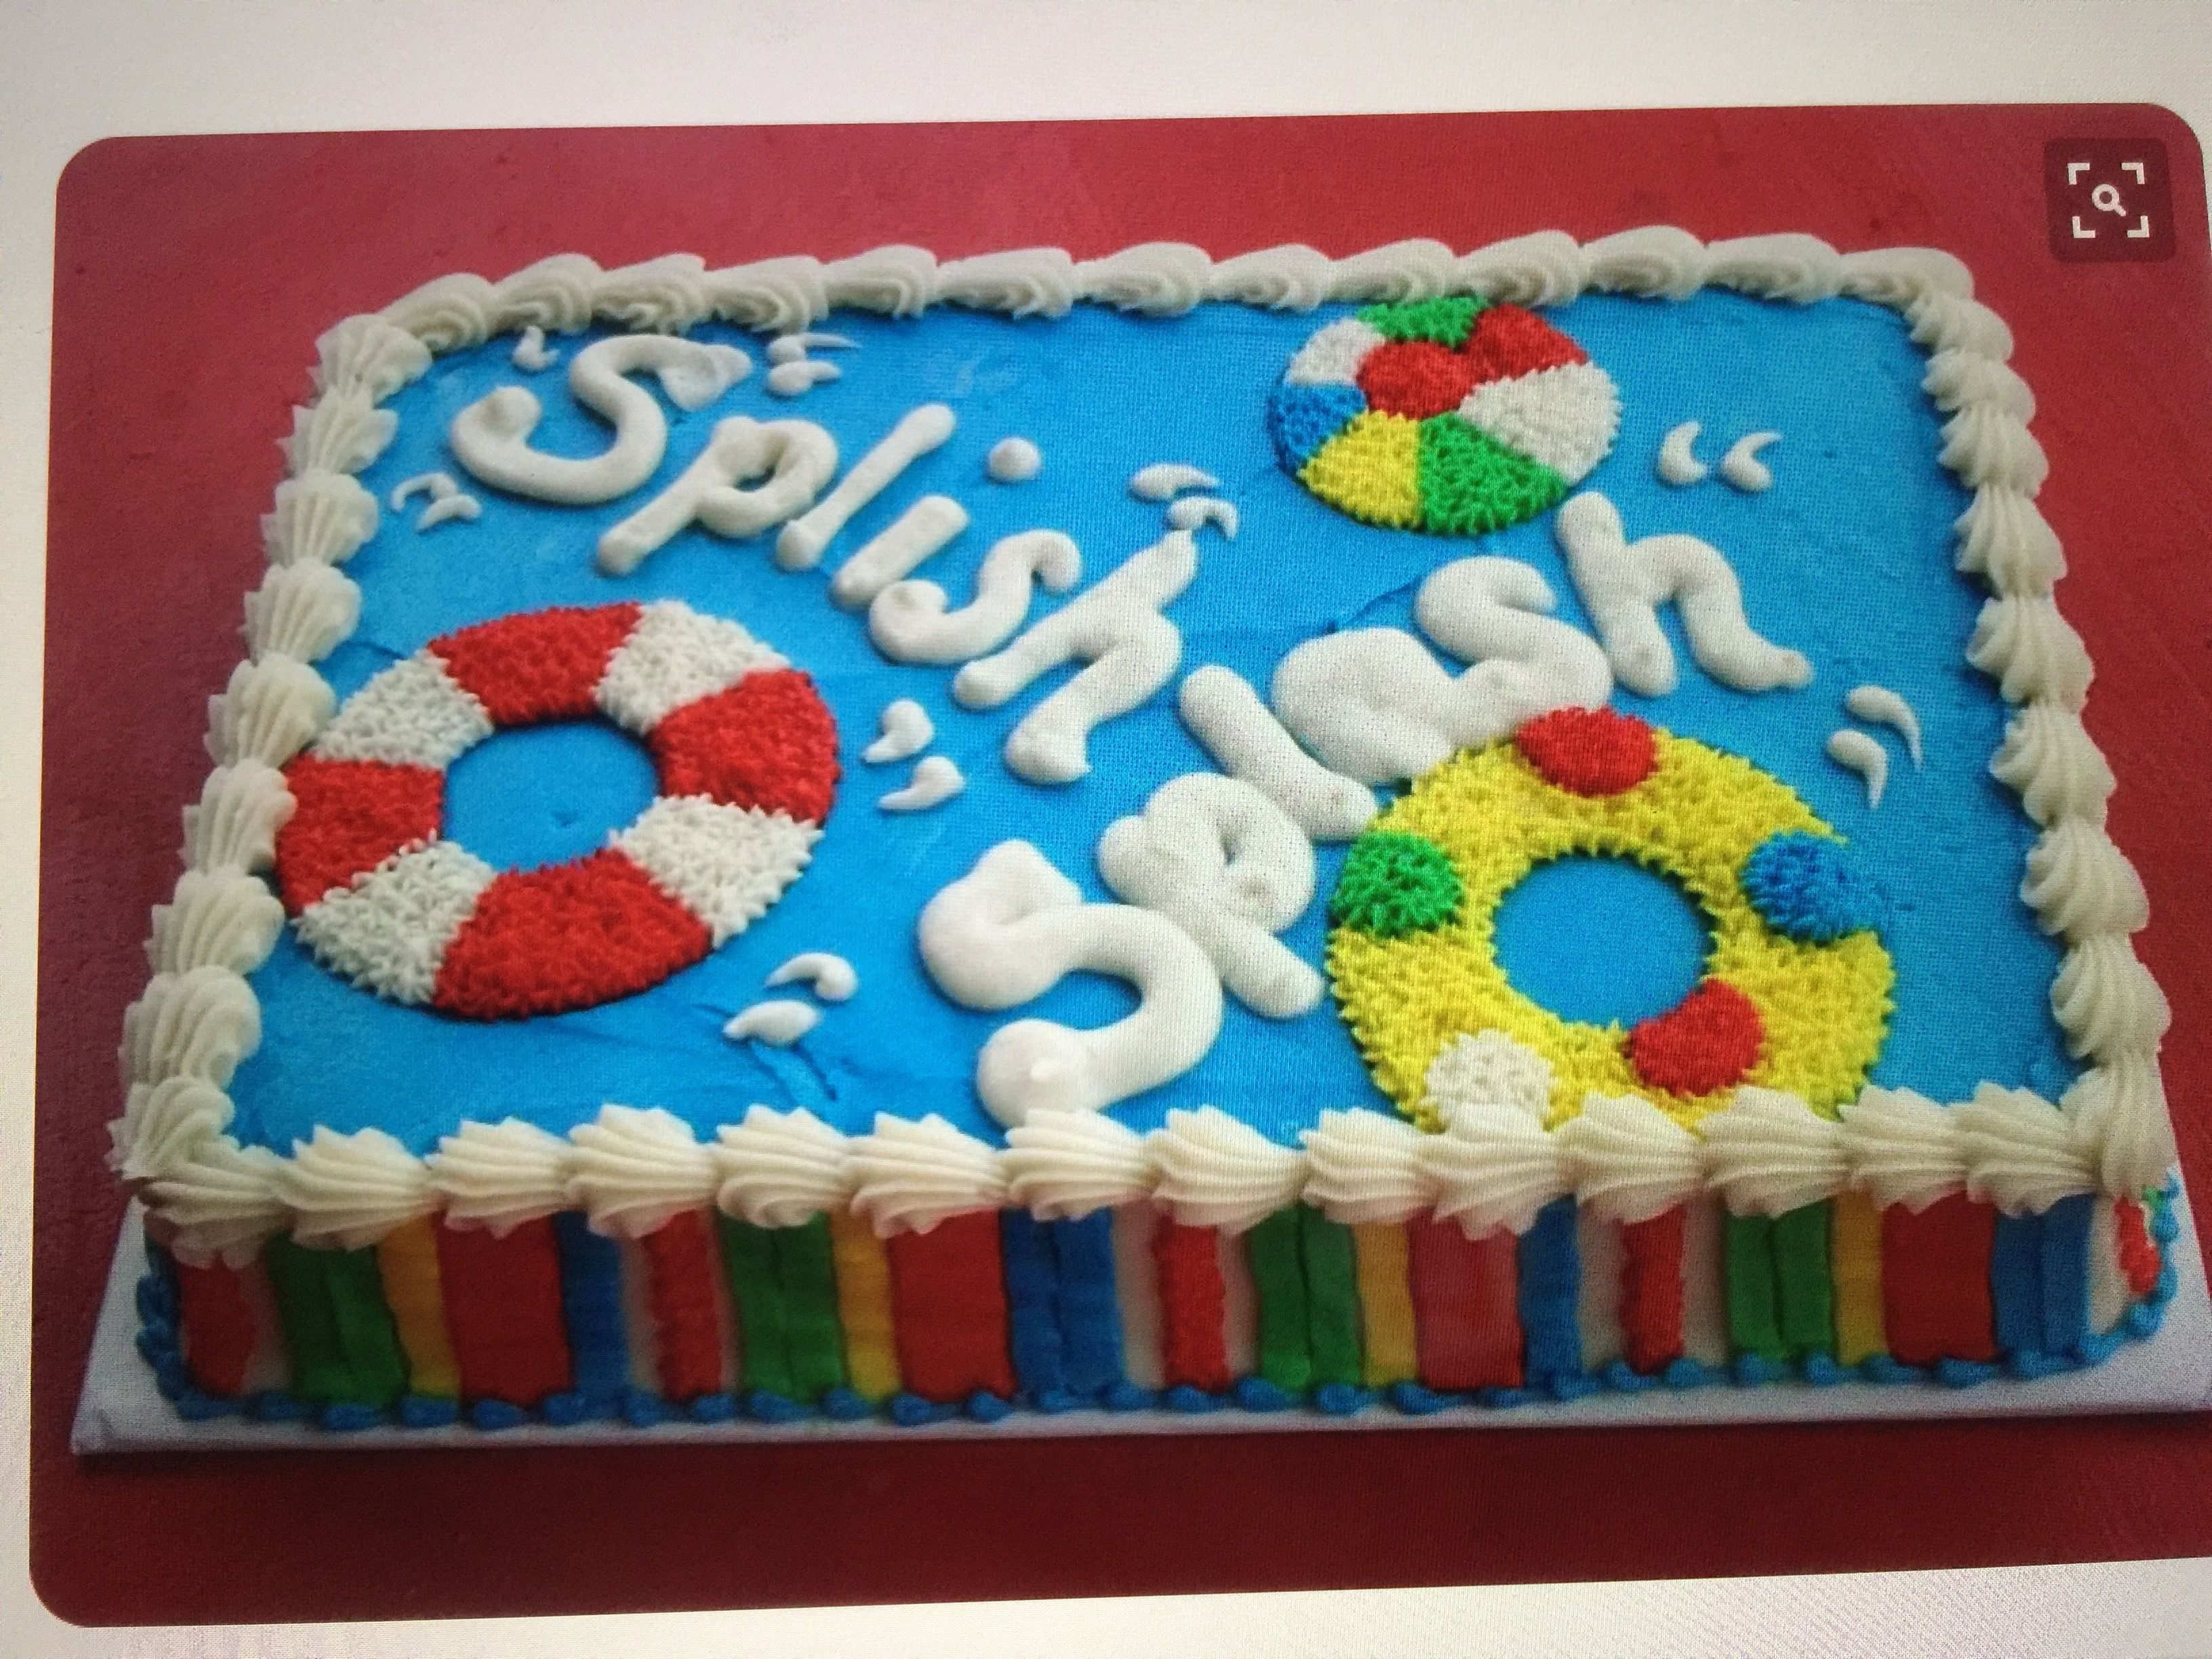 Summertime Pool Party Sheet Cake In Buttercream With Images